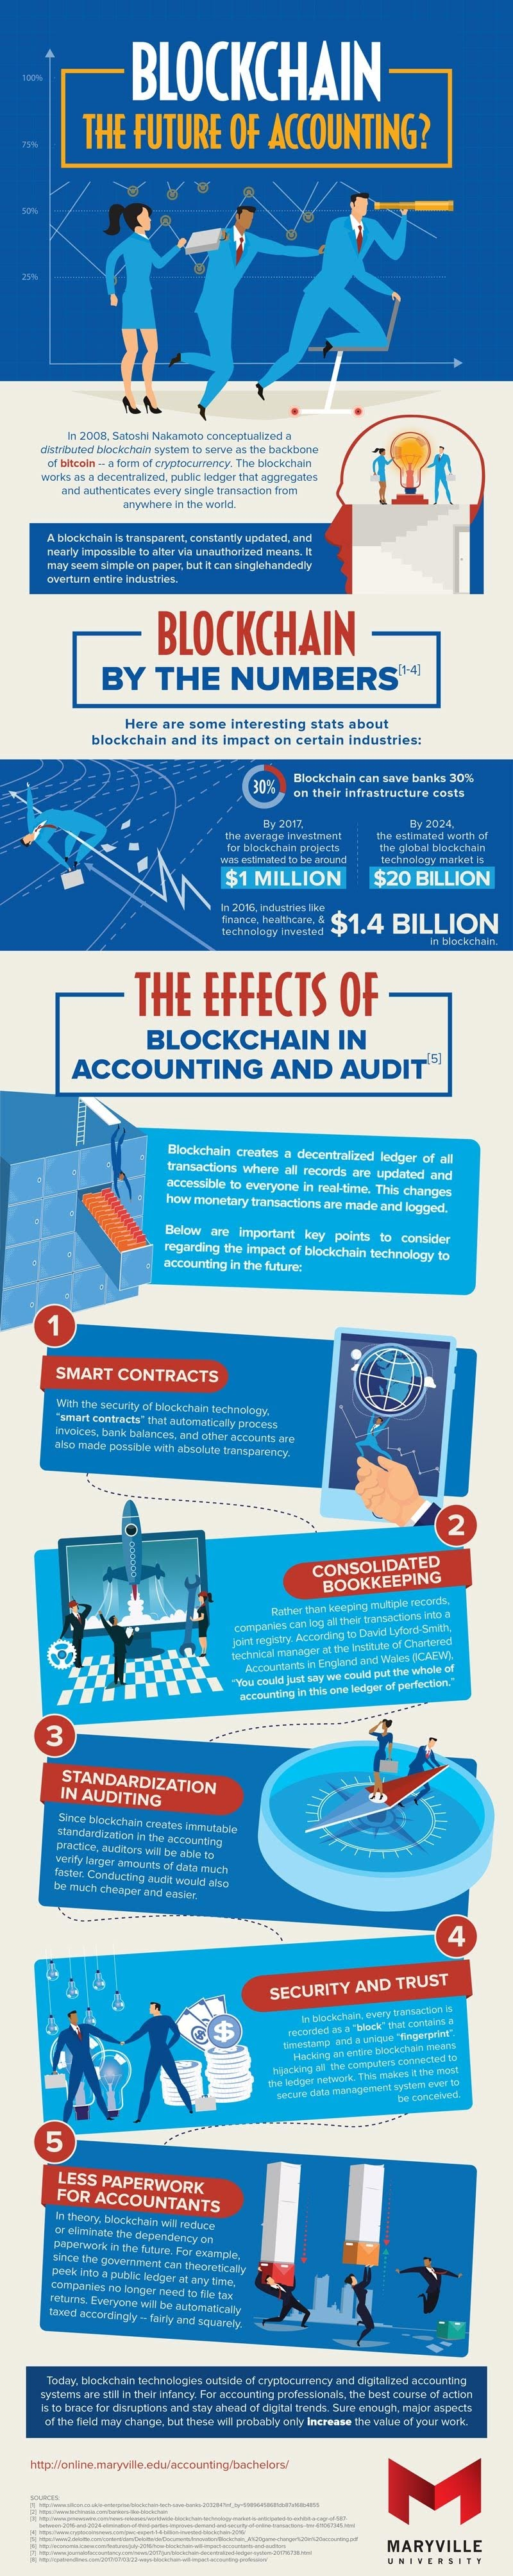 Blockchain the Future of Accounting #infographic